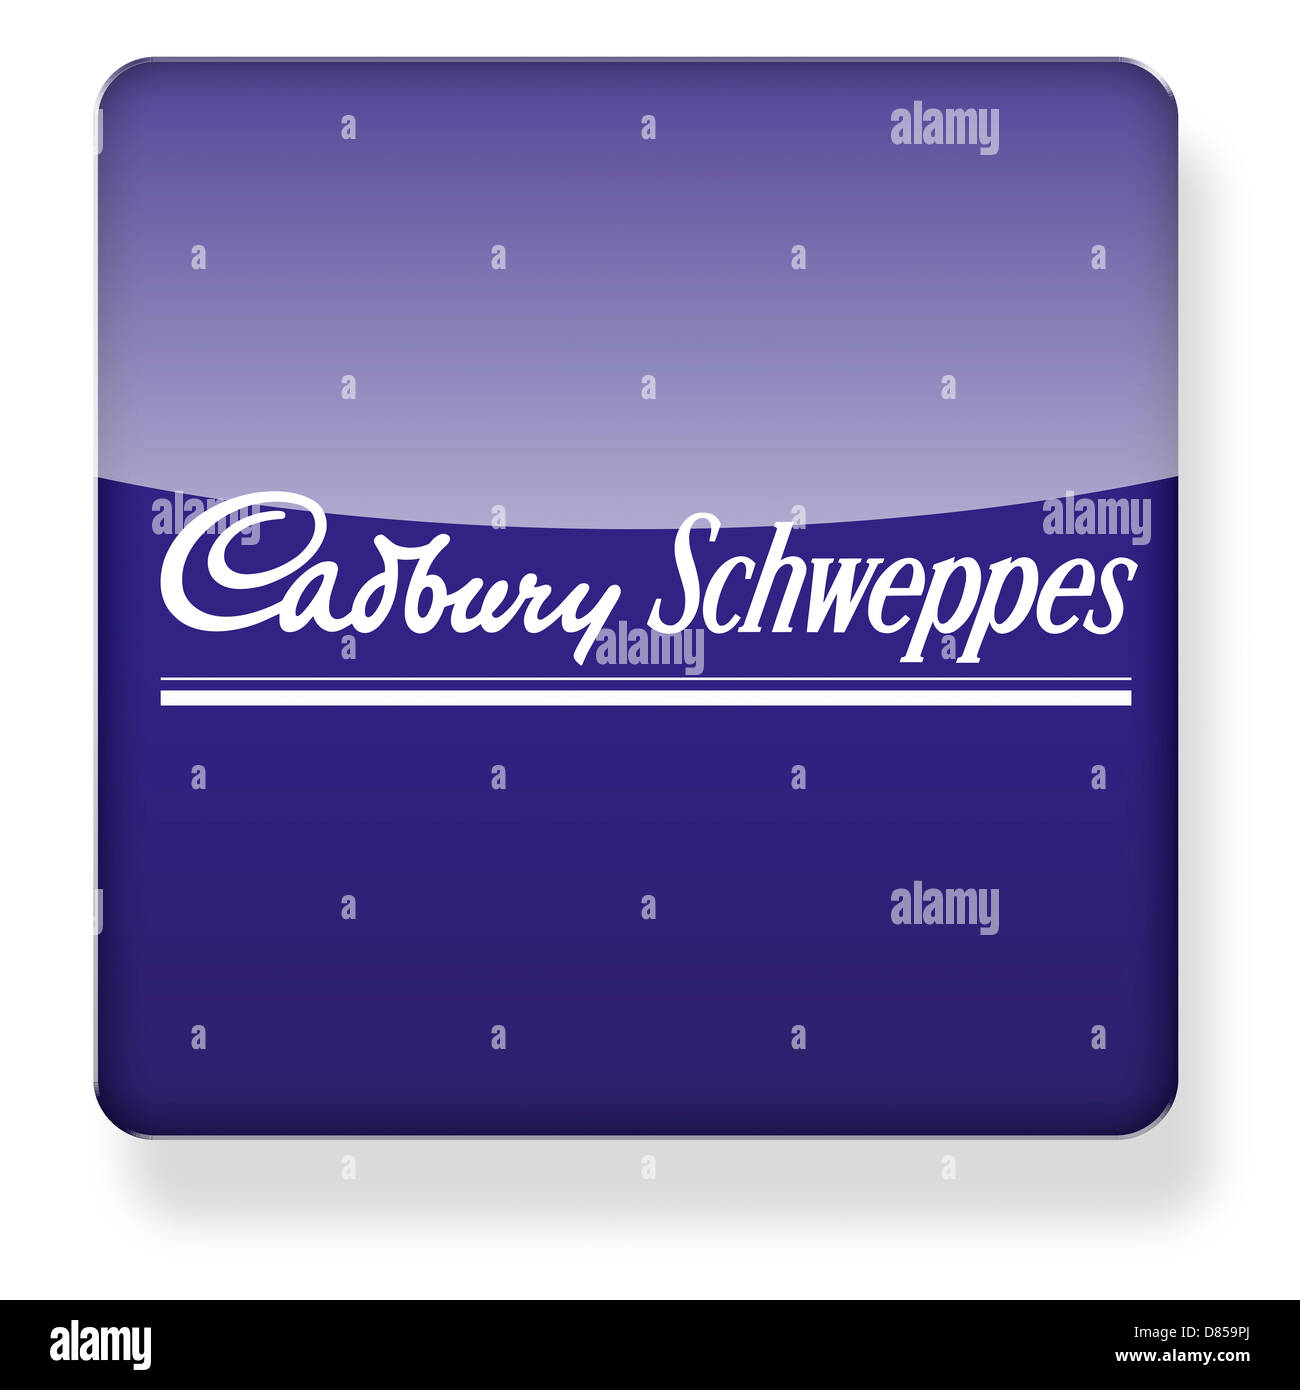 cadbury schweppes Reviews from cadbury schweppes employees about cadbury schweppes culture, salaries, benefits, work-life balance, management, job security, and more.